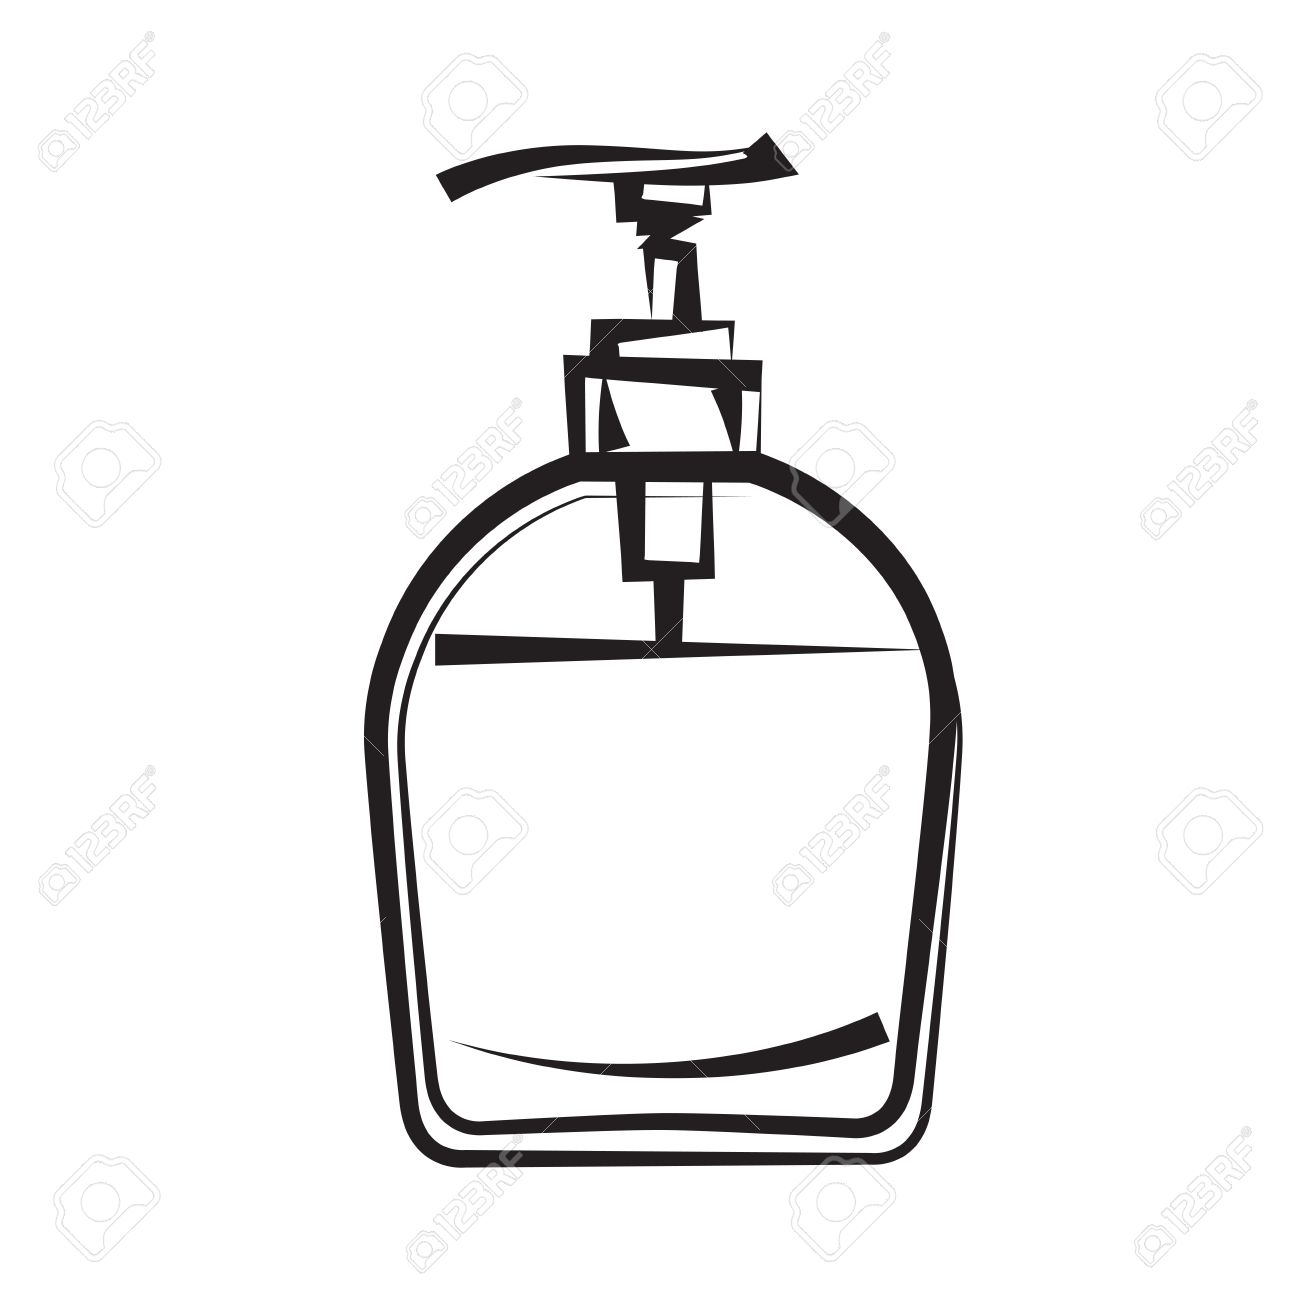 Soap dispenser  freehand drawing  icon black and white  illustration Stock Vector - 14527930